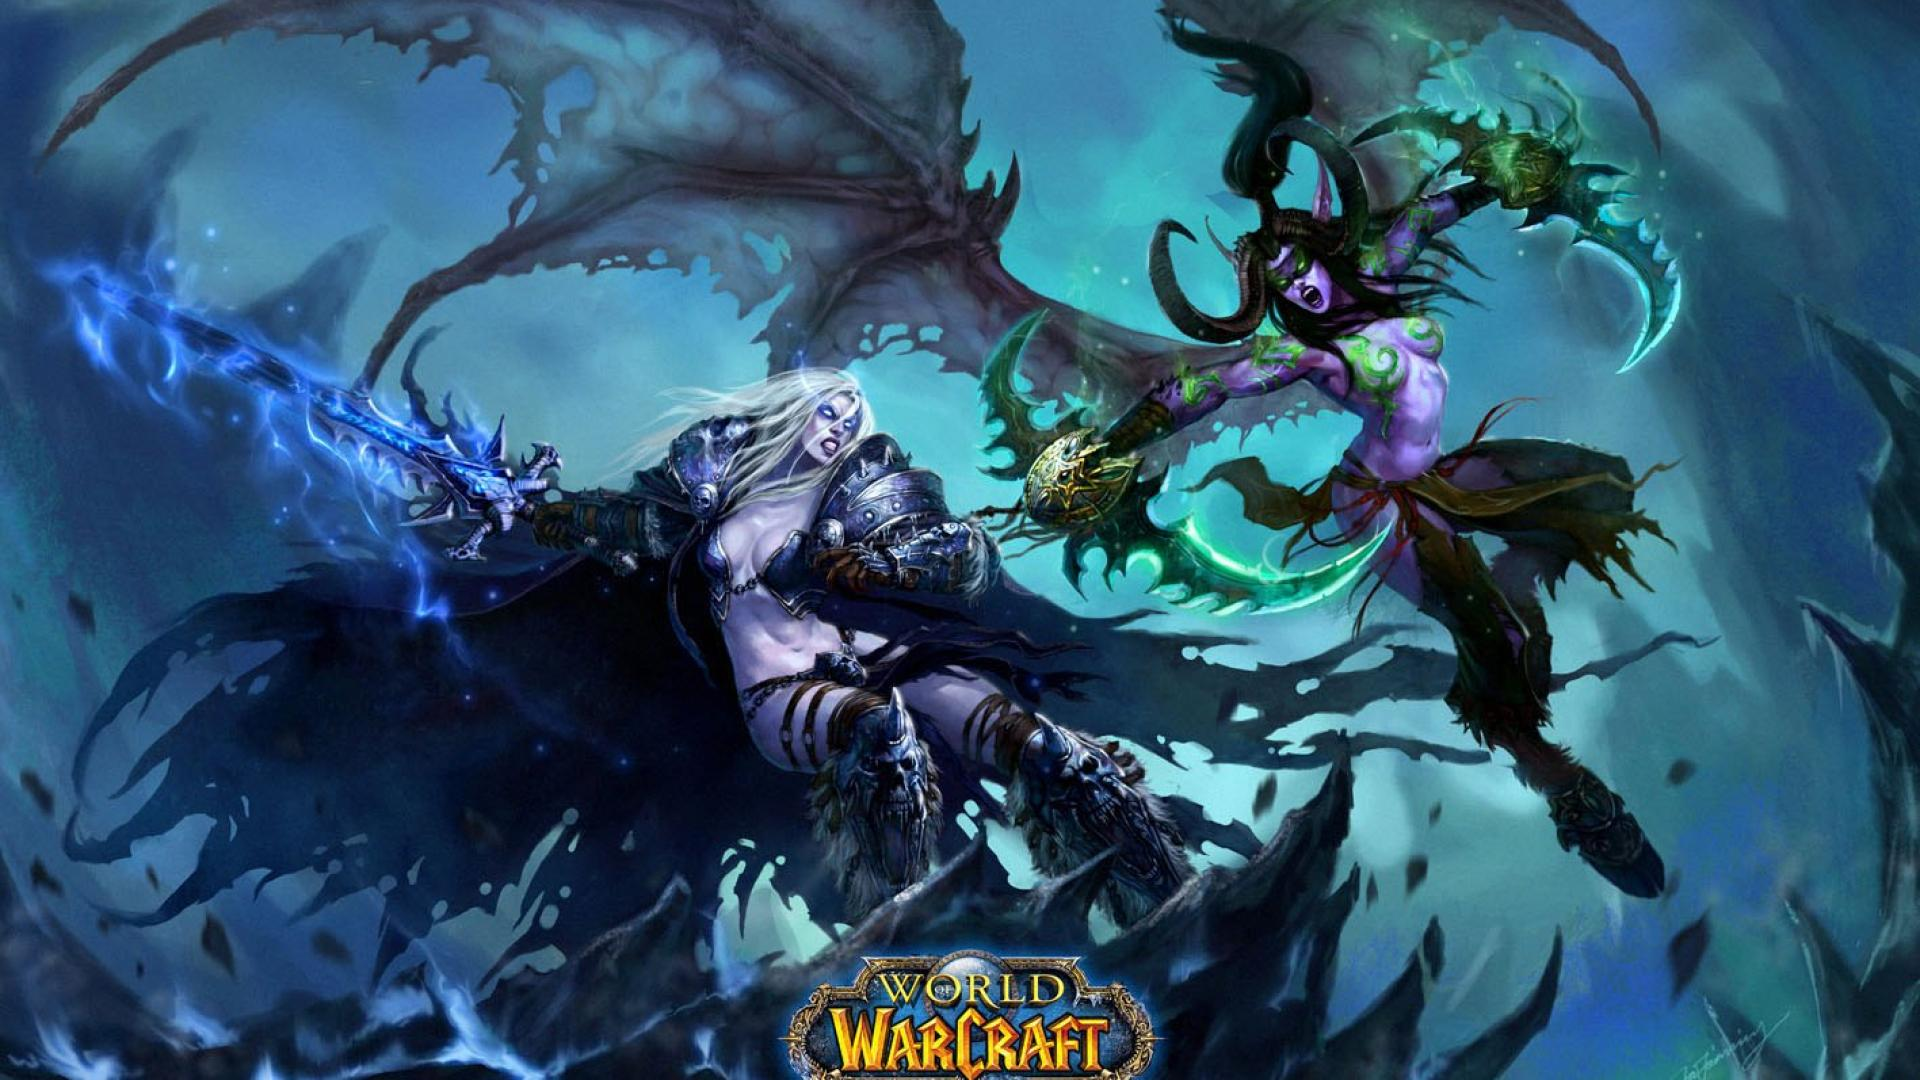 World Of Warcraft Hd Fond D'écran